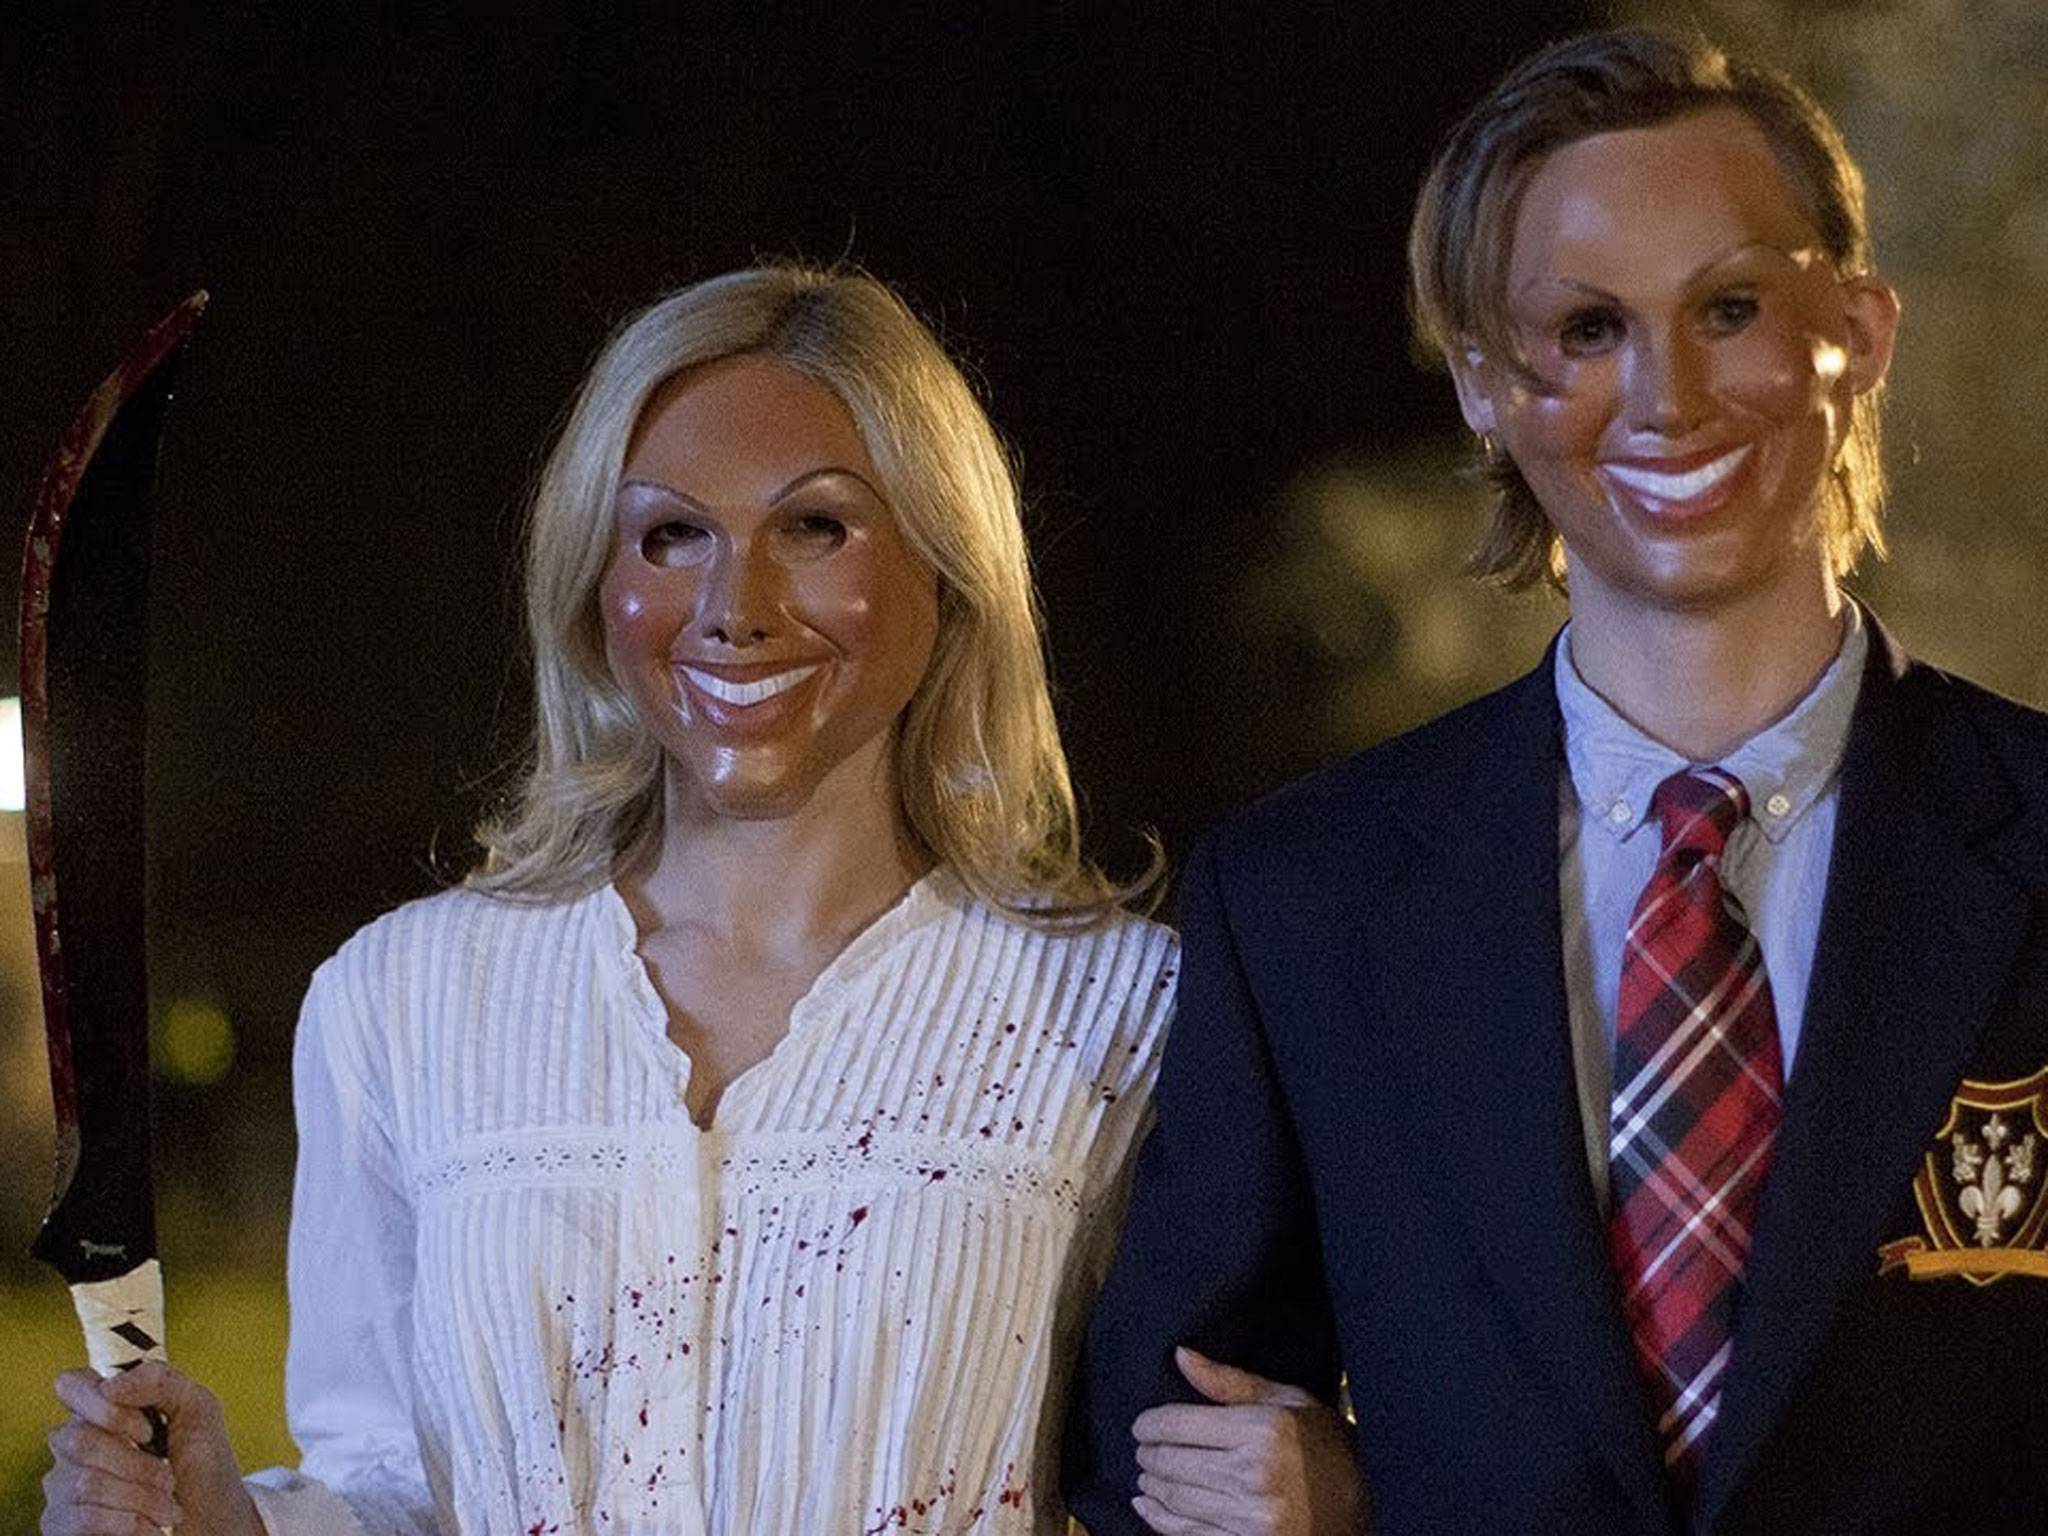 'The Purge' Review: Intriguing Societal X-ray Dulled by Disappointing Execution